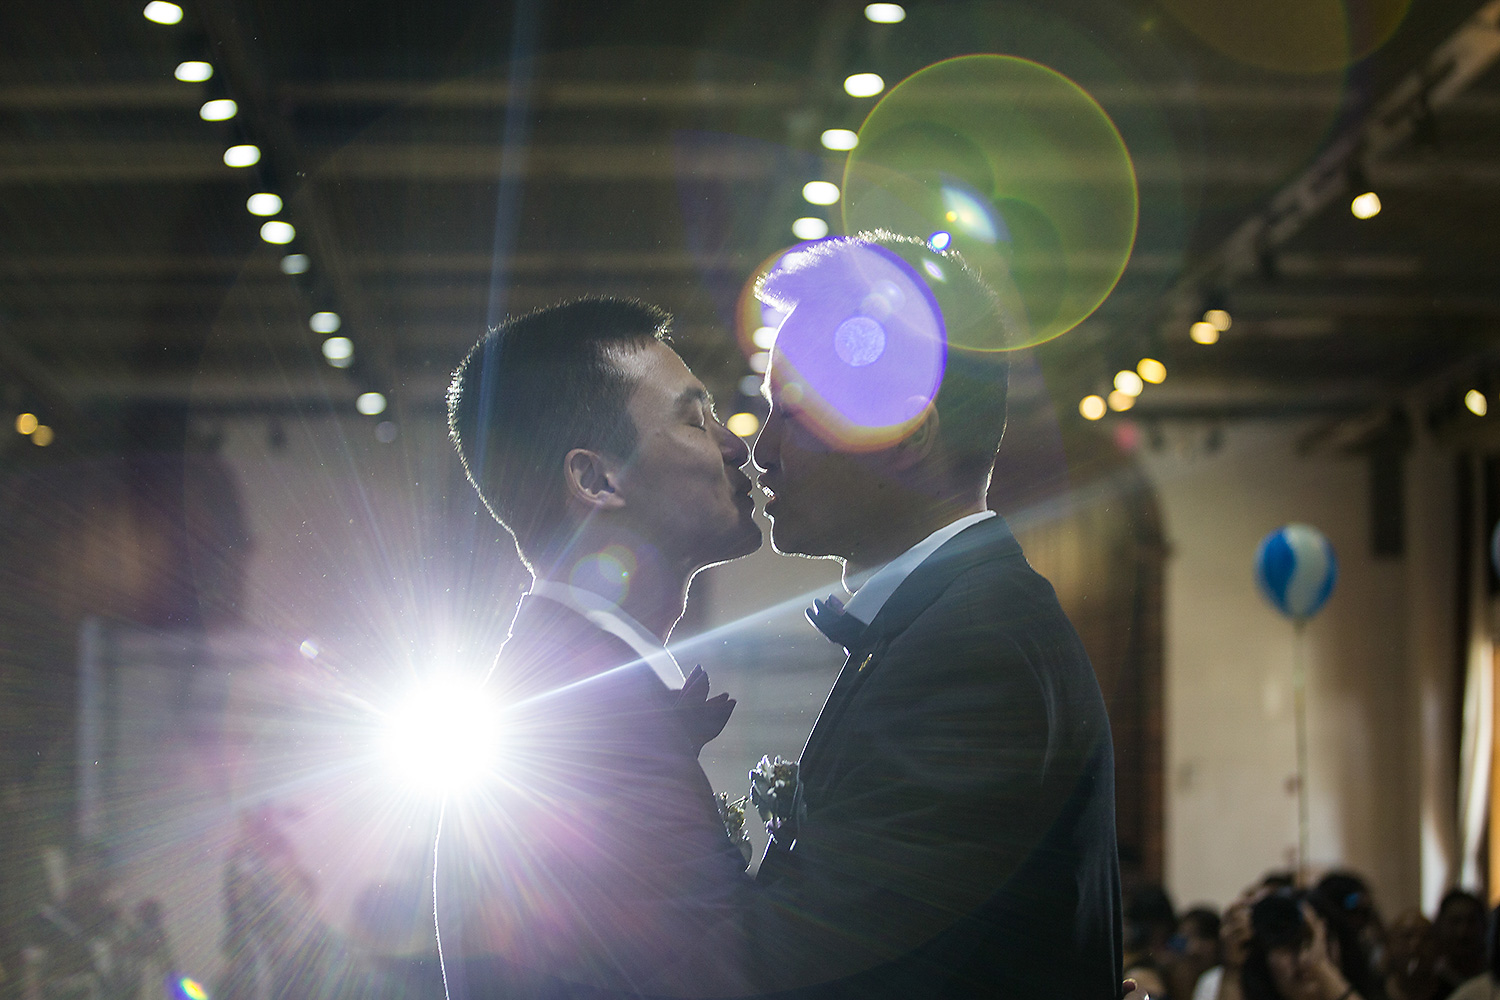 Sun Wenlin and Hu Mingliang kiss during their illegal wedding ceremony in Changsha, Hunan province. Photo by Wu Yue @yuewoo